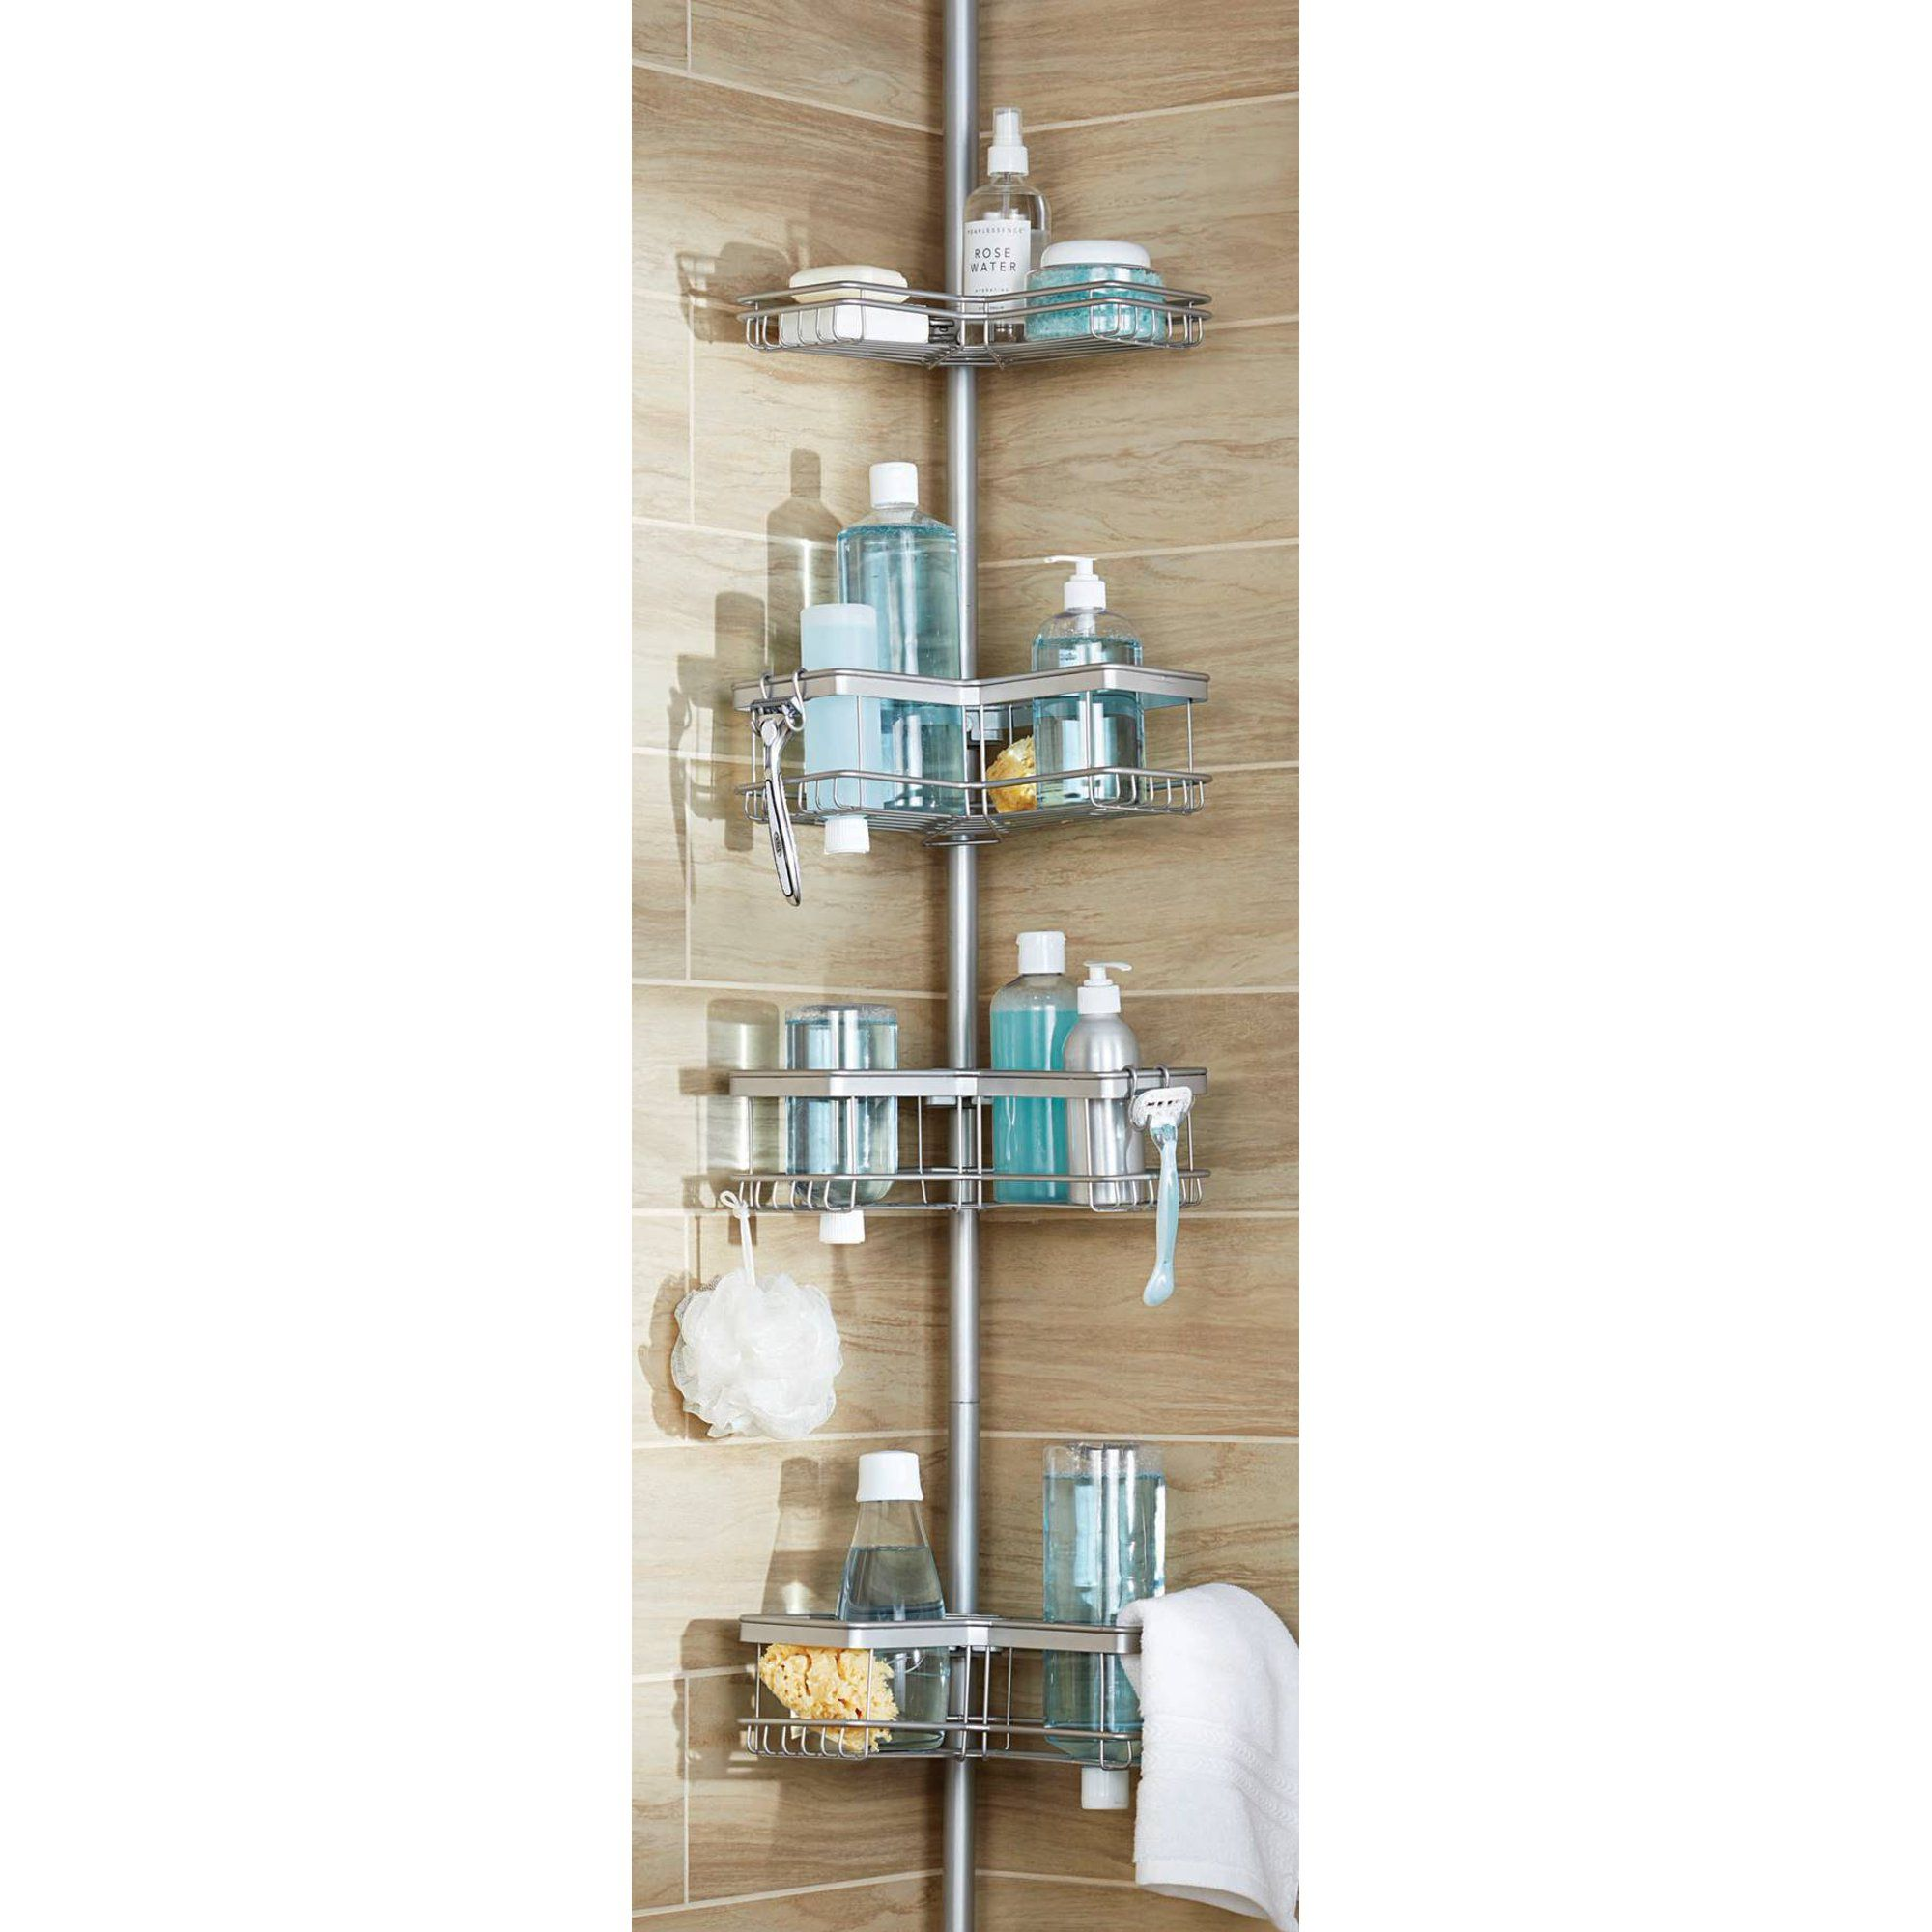 4 Tier Rust Resistant Contoured Tension Pole Shower Caddy 60 In To 108 In Satin Nickel Walmart Com In 2021 Shower Caddy Corner Shower Caddy Bathroom Shower Organization